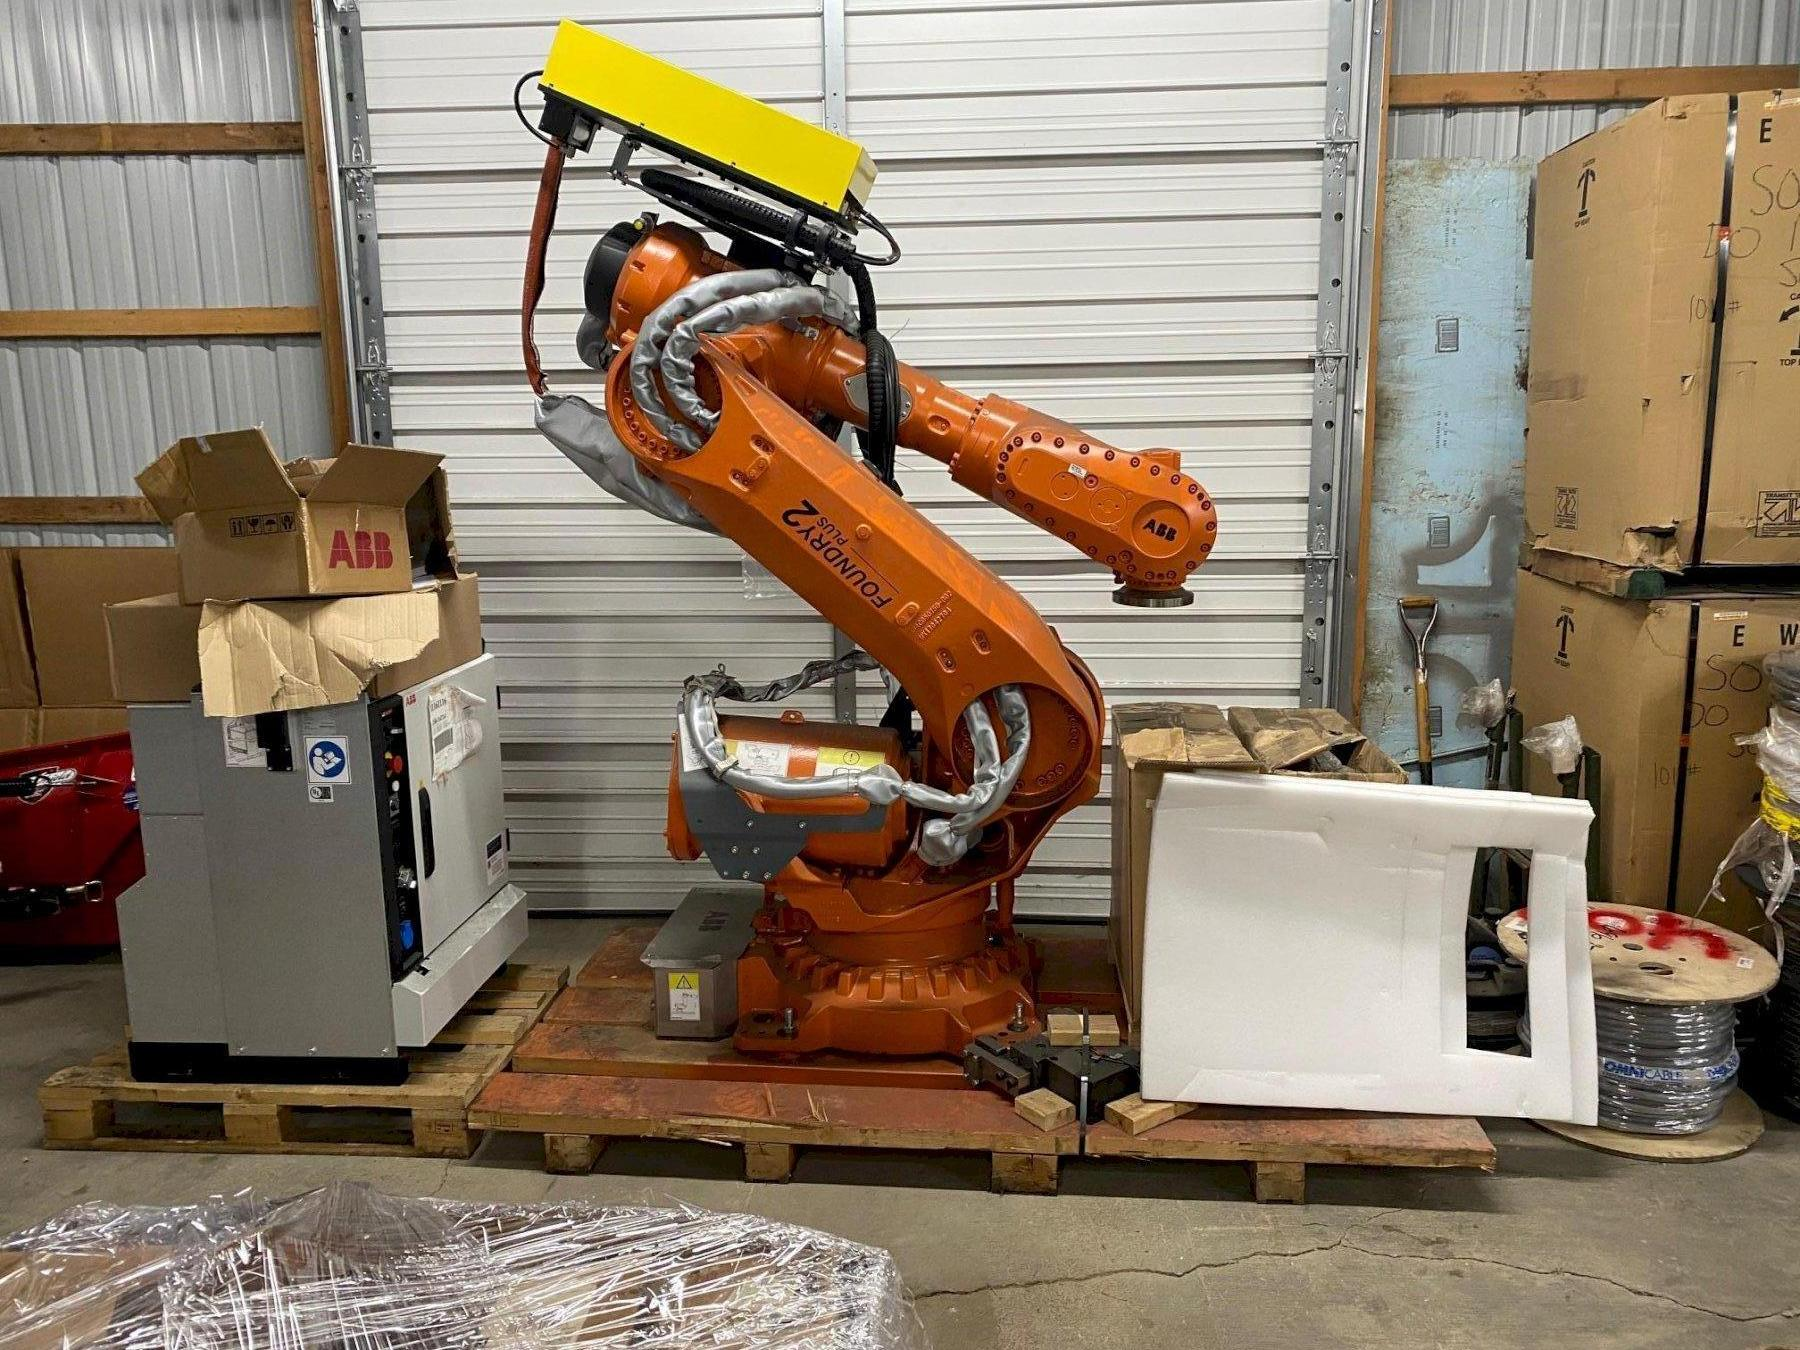 6 AXIS ABB IRB 6700 ROBOT FOUNDRY PLUS 2, NEW 2017: STOCK 14182